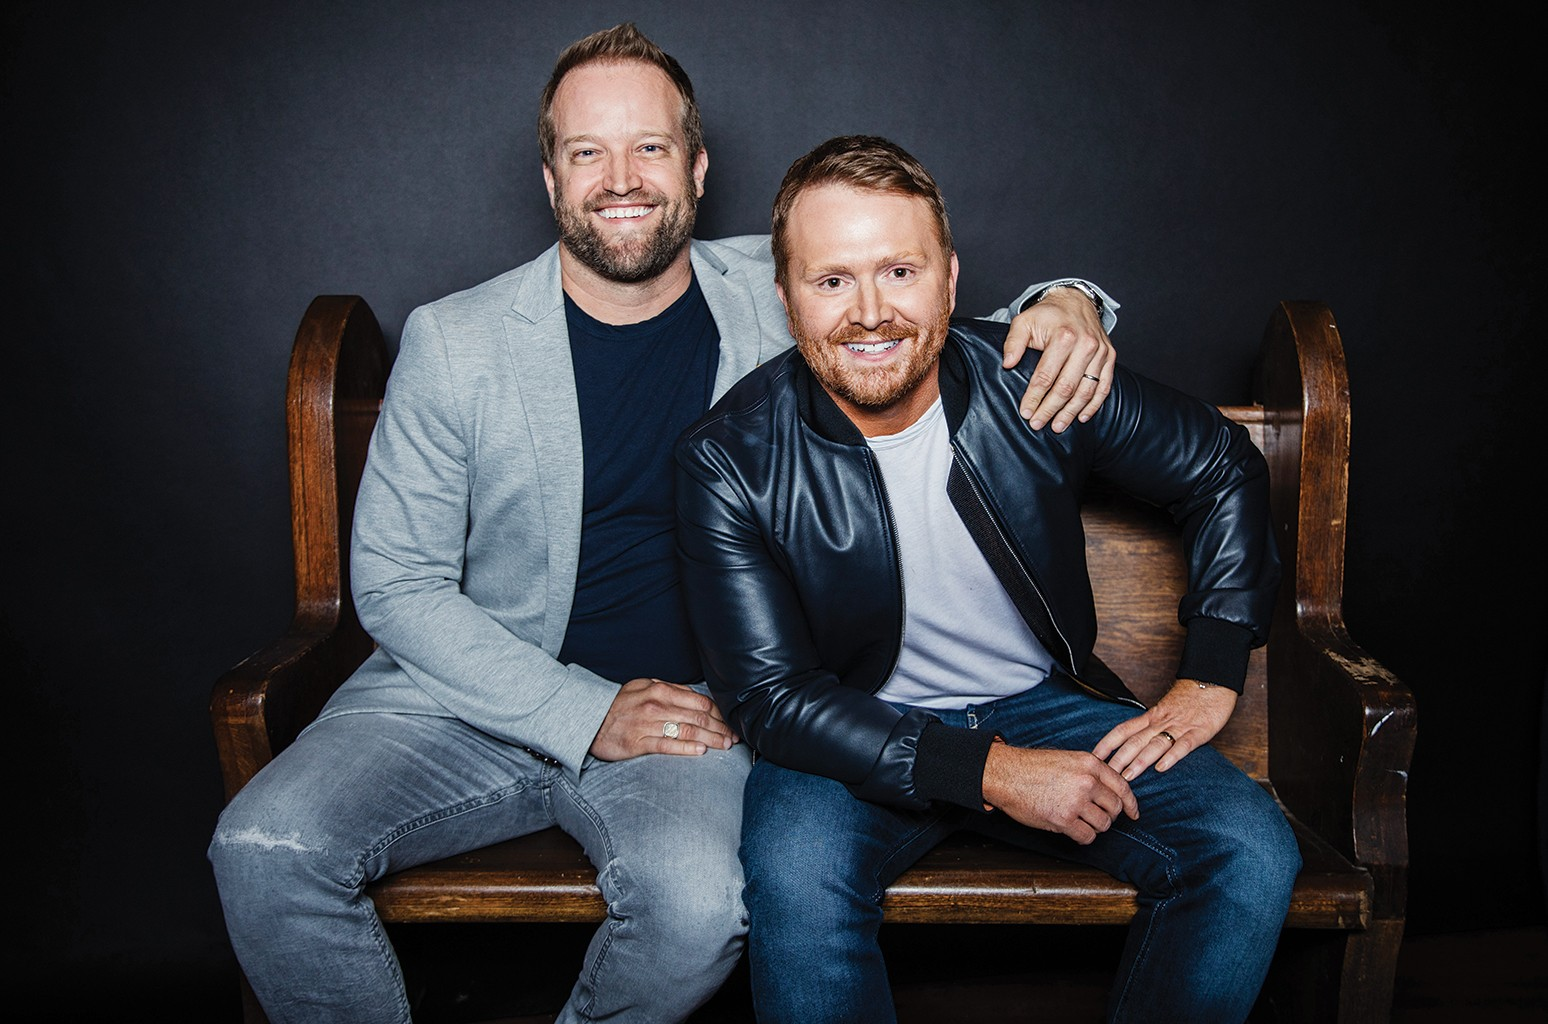 Michael McAnally Baum and Shane McAnally